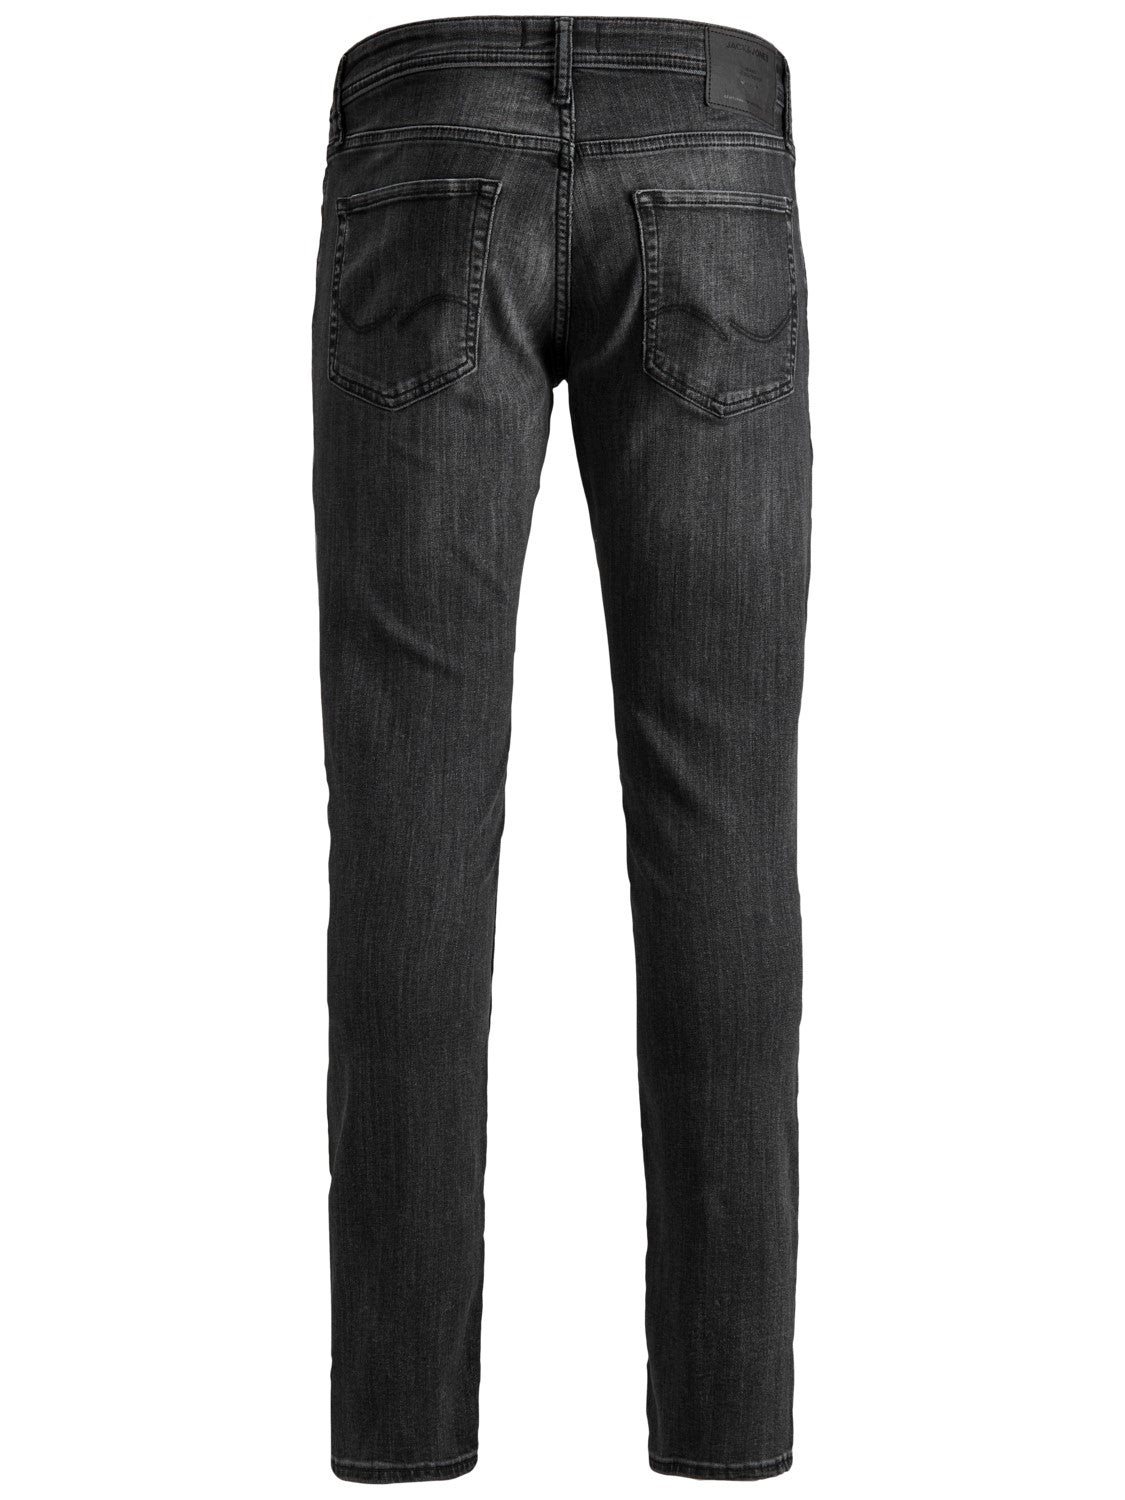 Jack & Jones Mens 'Glenn' Slim Fit Jeans-2